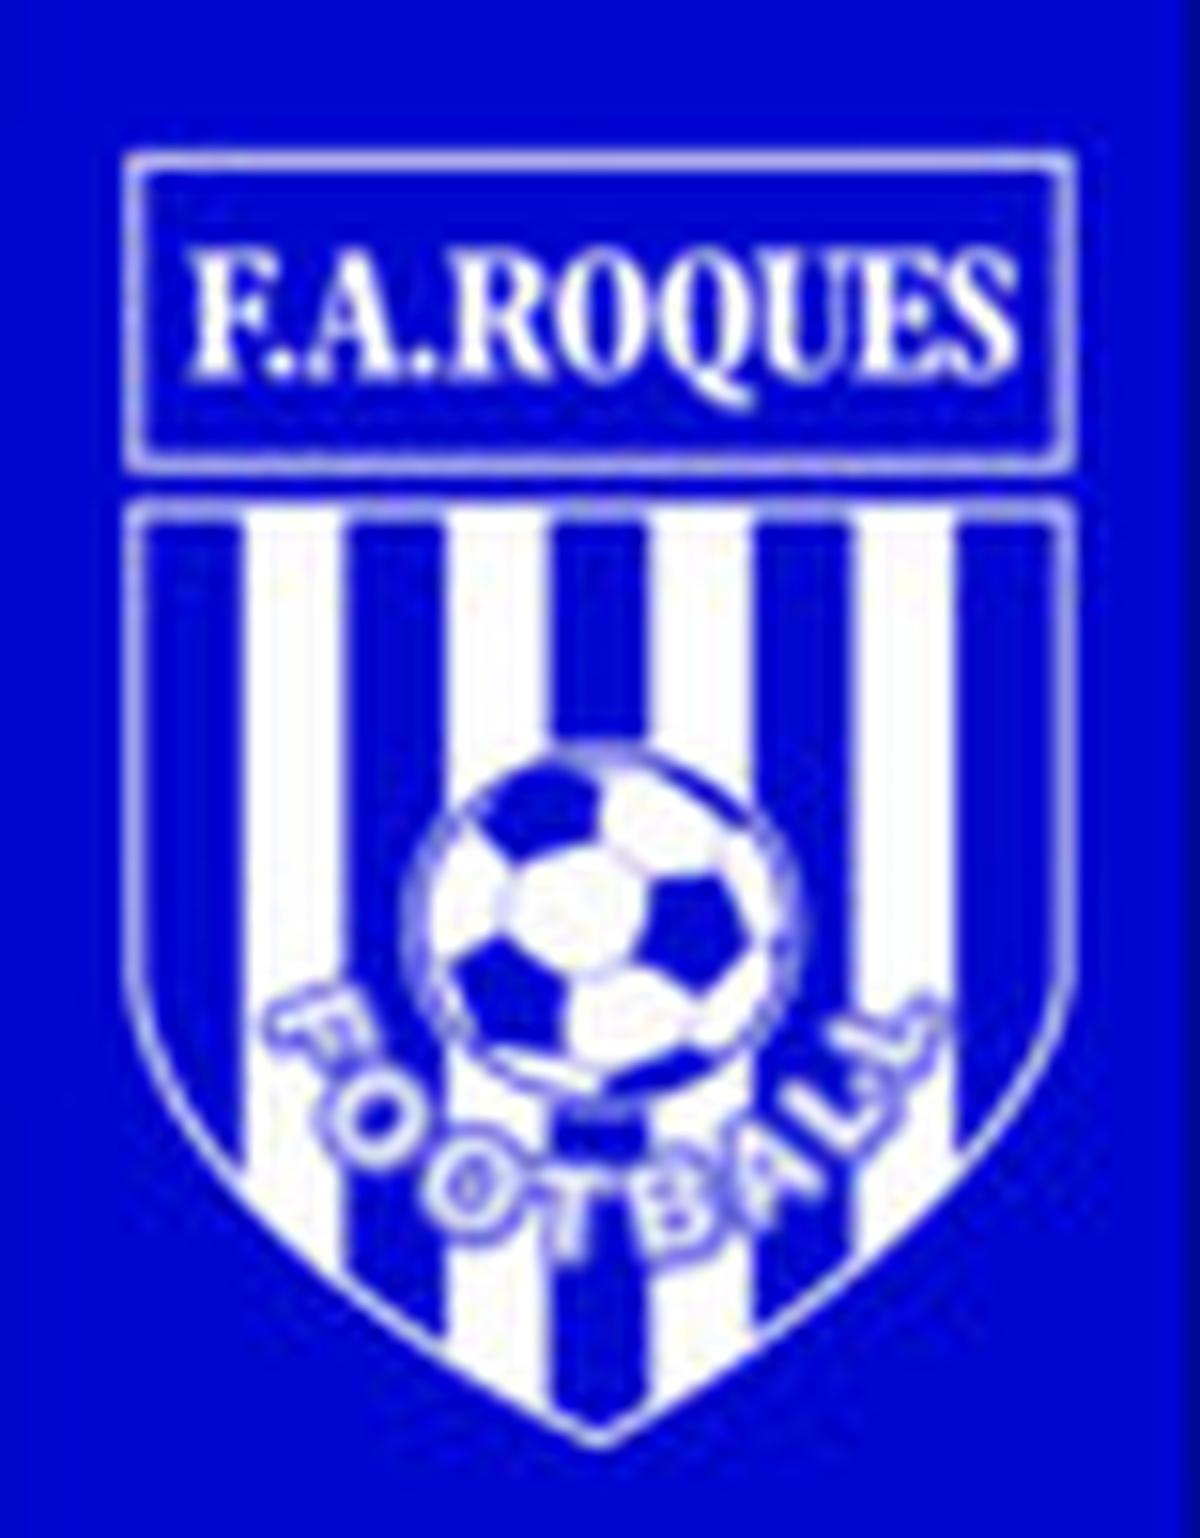 FOOT ASSOCIATION DE ROQUES